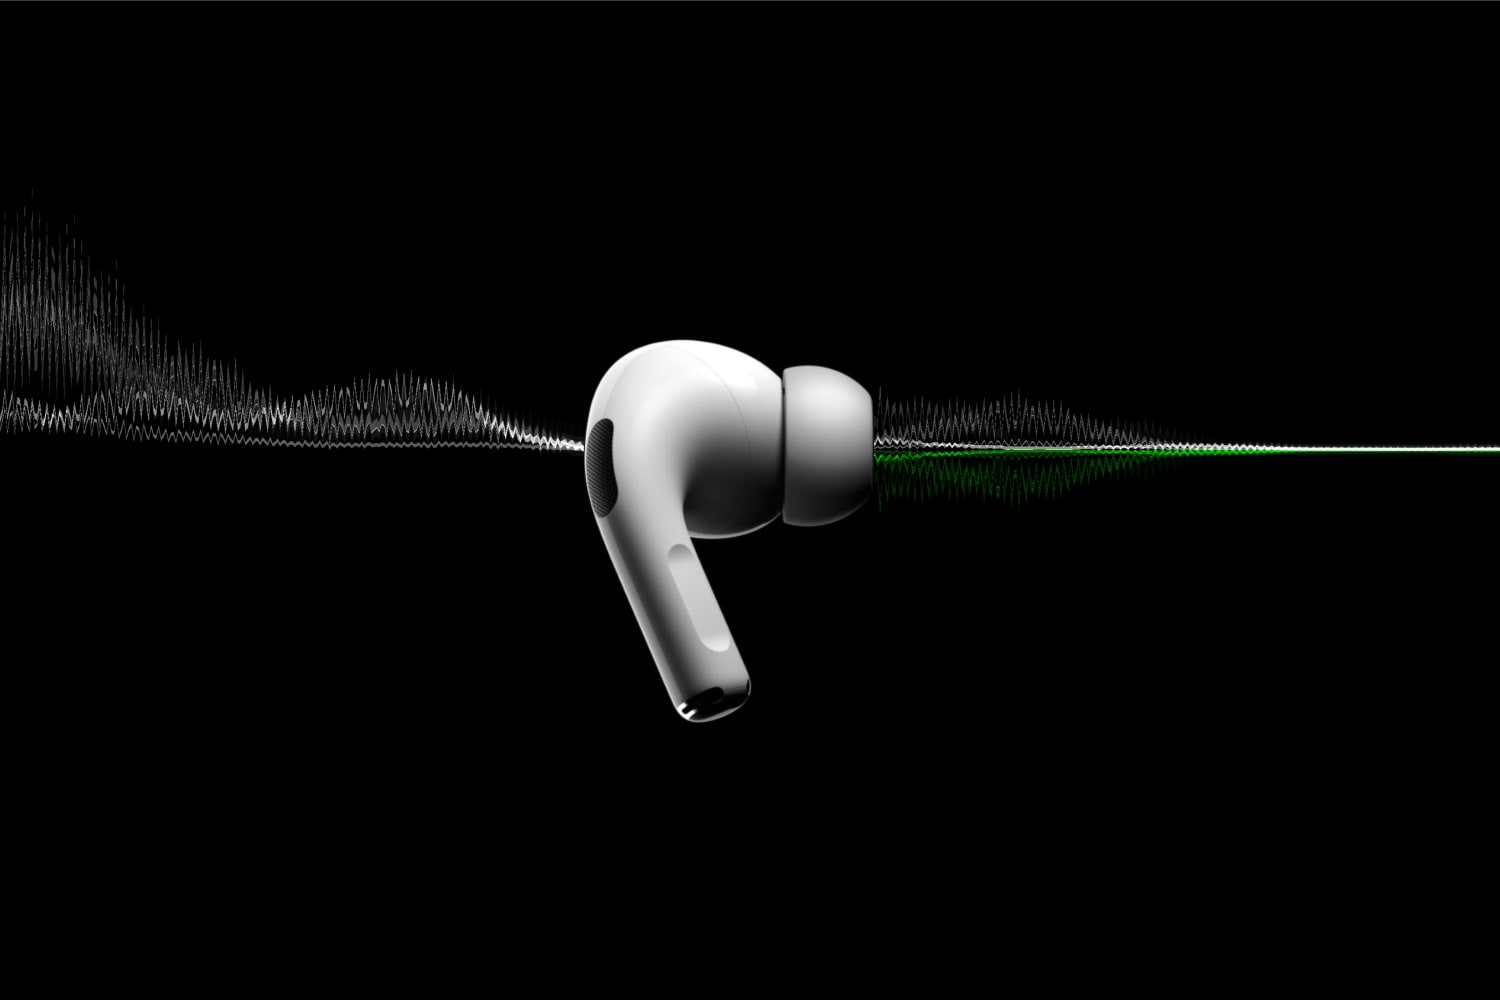 airpods-pro-2-specs-price-and-release-date-leaked-20201022-1